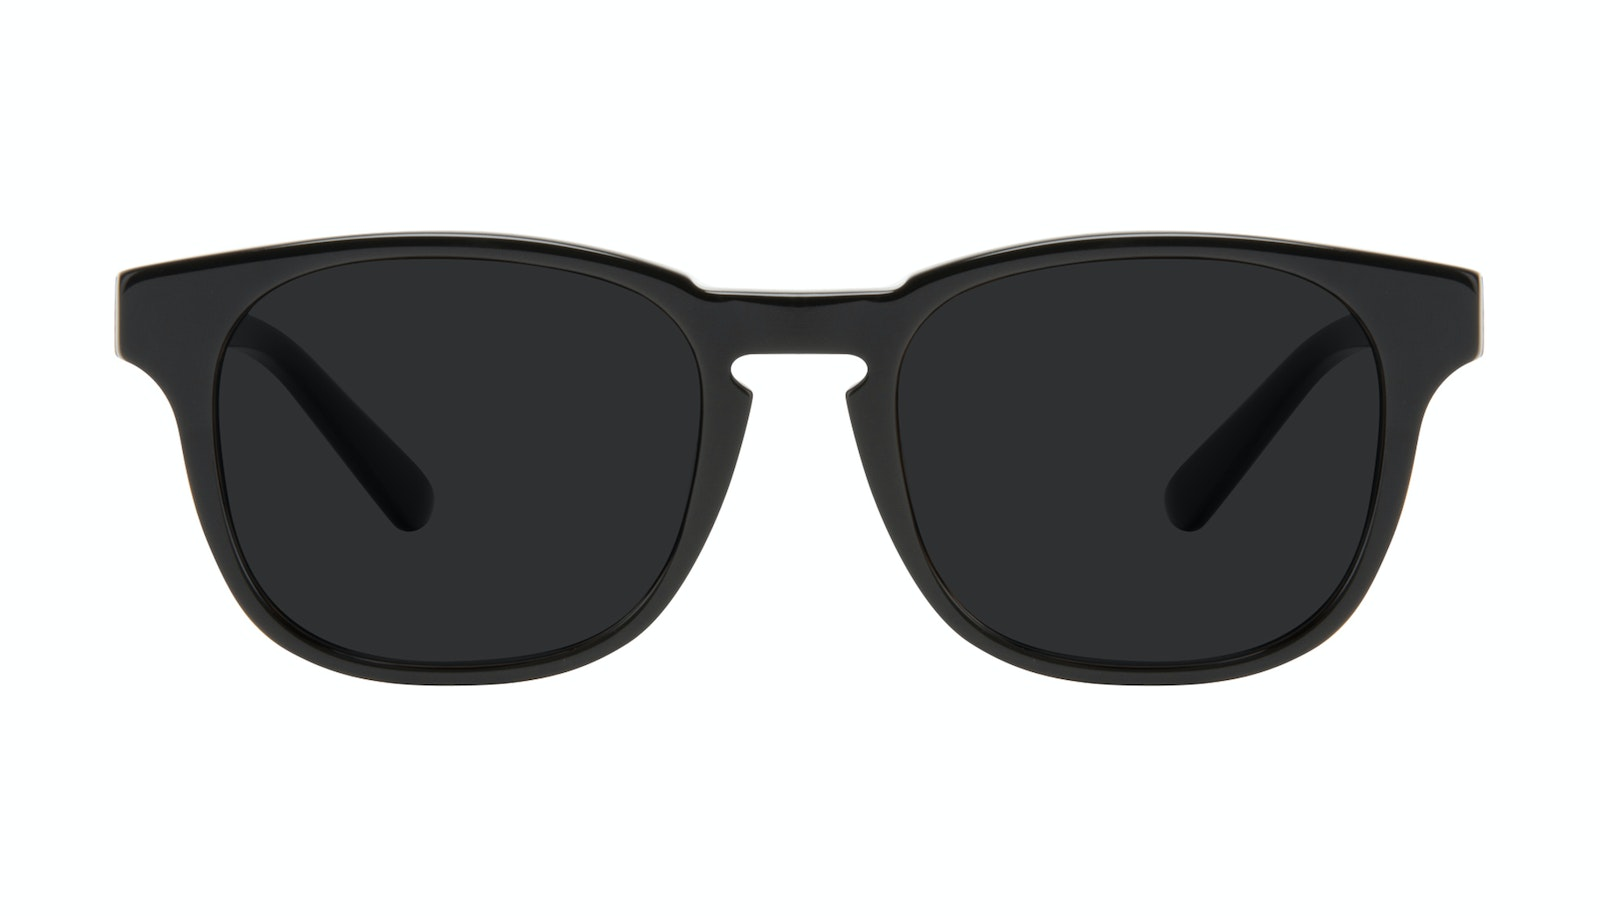 Affordable Fashion Glasses Square Sunglasses Men Outline Black Tort